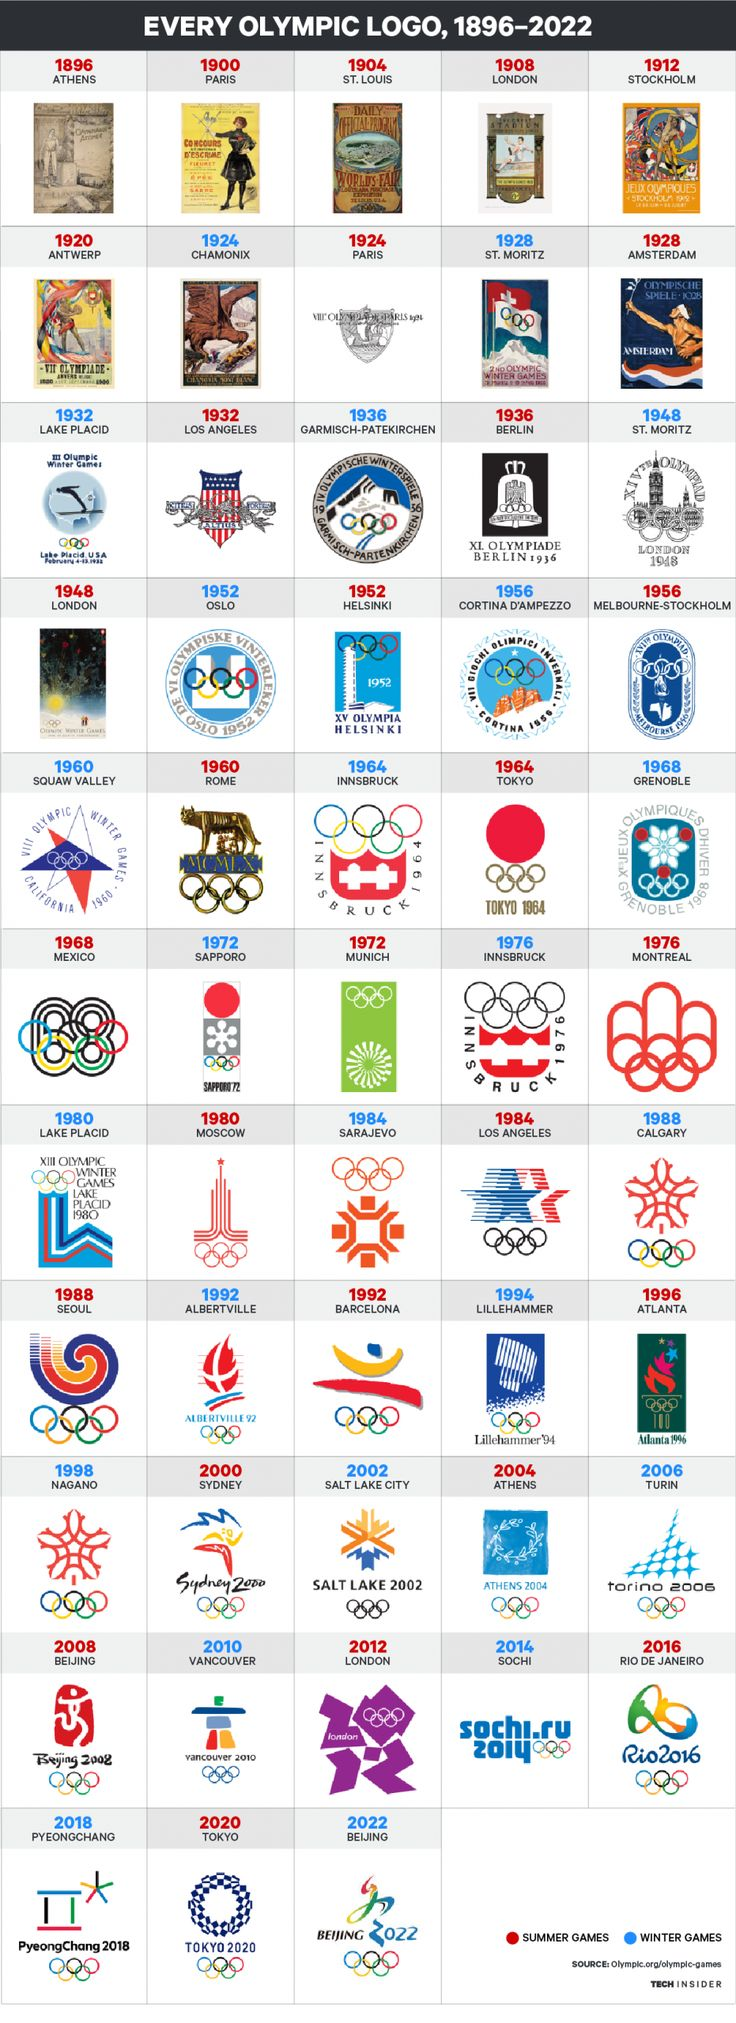 Super cool!! Here's every Olympic logo from 1896 to 2022